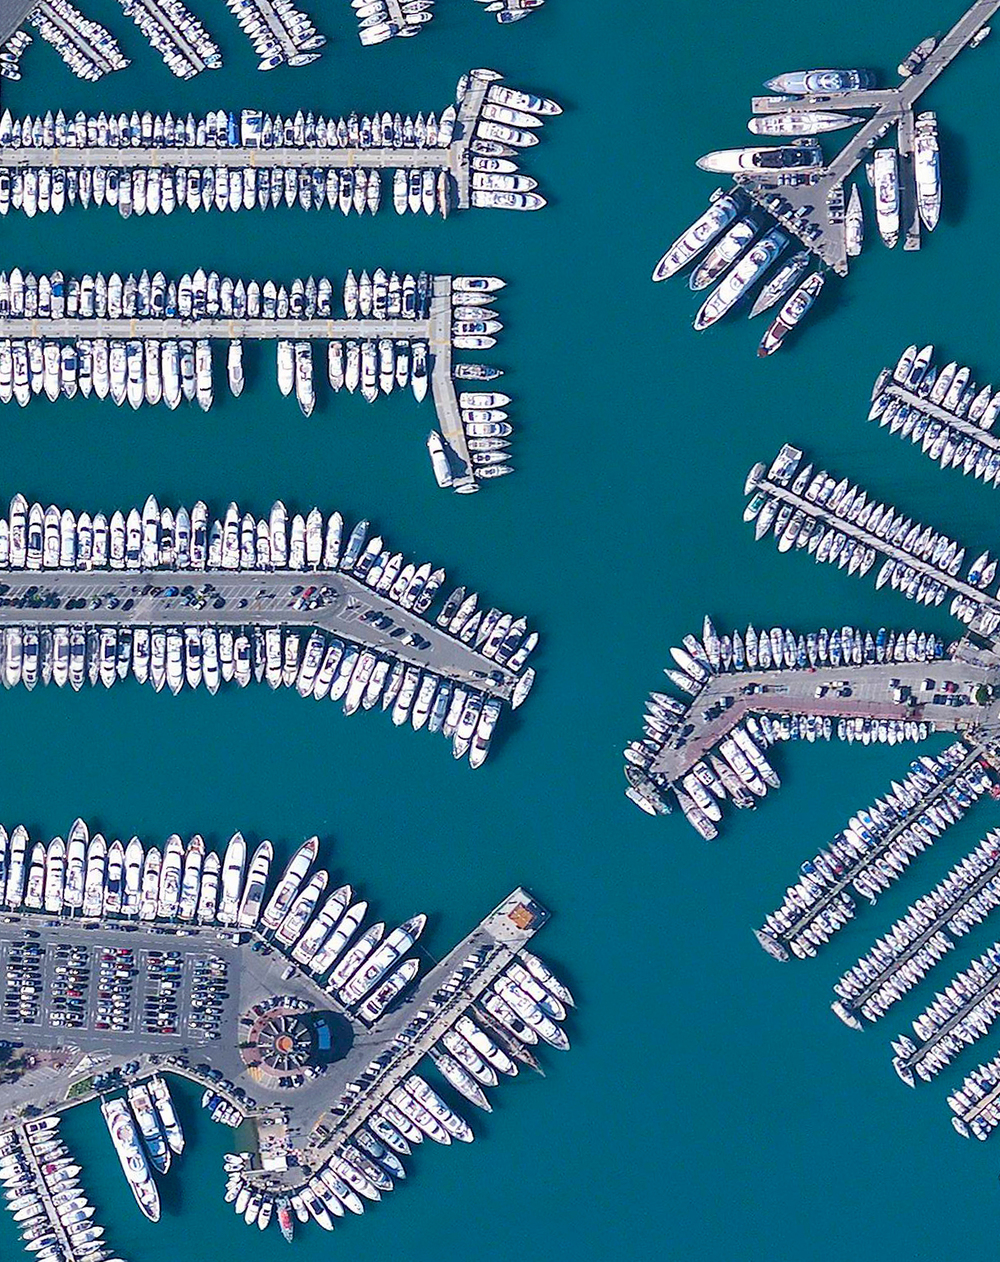 5/19/2016   Port Vauban   Antibes, France  43°35′12″N 7°7′37″E     Massive yachts are docked in the stunning blue water of Port Vauban, a harbor located in Antibes on the French Riviera. The facility is the largest marina on the Mediterranean Sea in terms of total tonnage of the boats that are moored here.